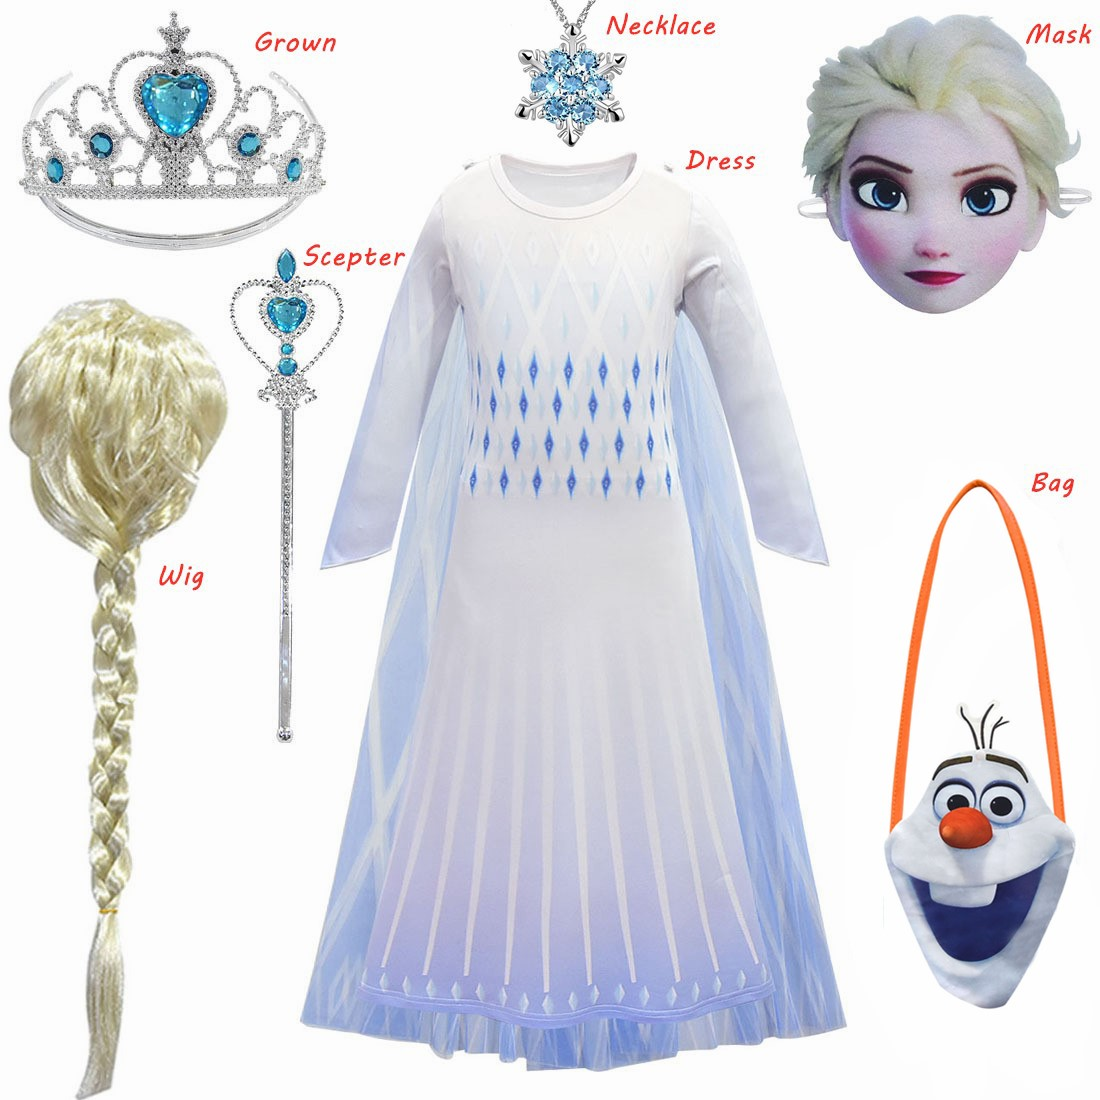 2020 Costume Frozen 2 Cosplay Elsa Anna Princess Dress Kids Dresses For Girls Evening Party Dresses Flower Girls Wedding Gowns